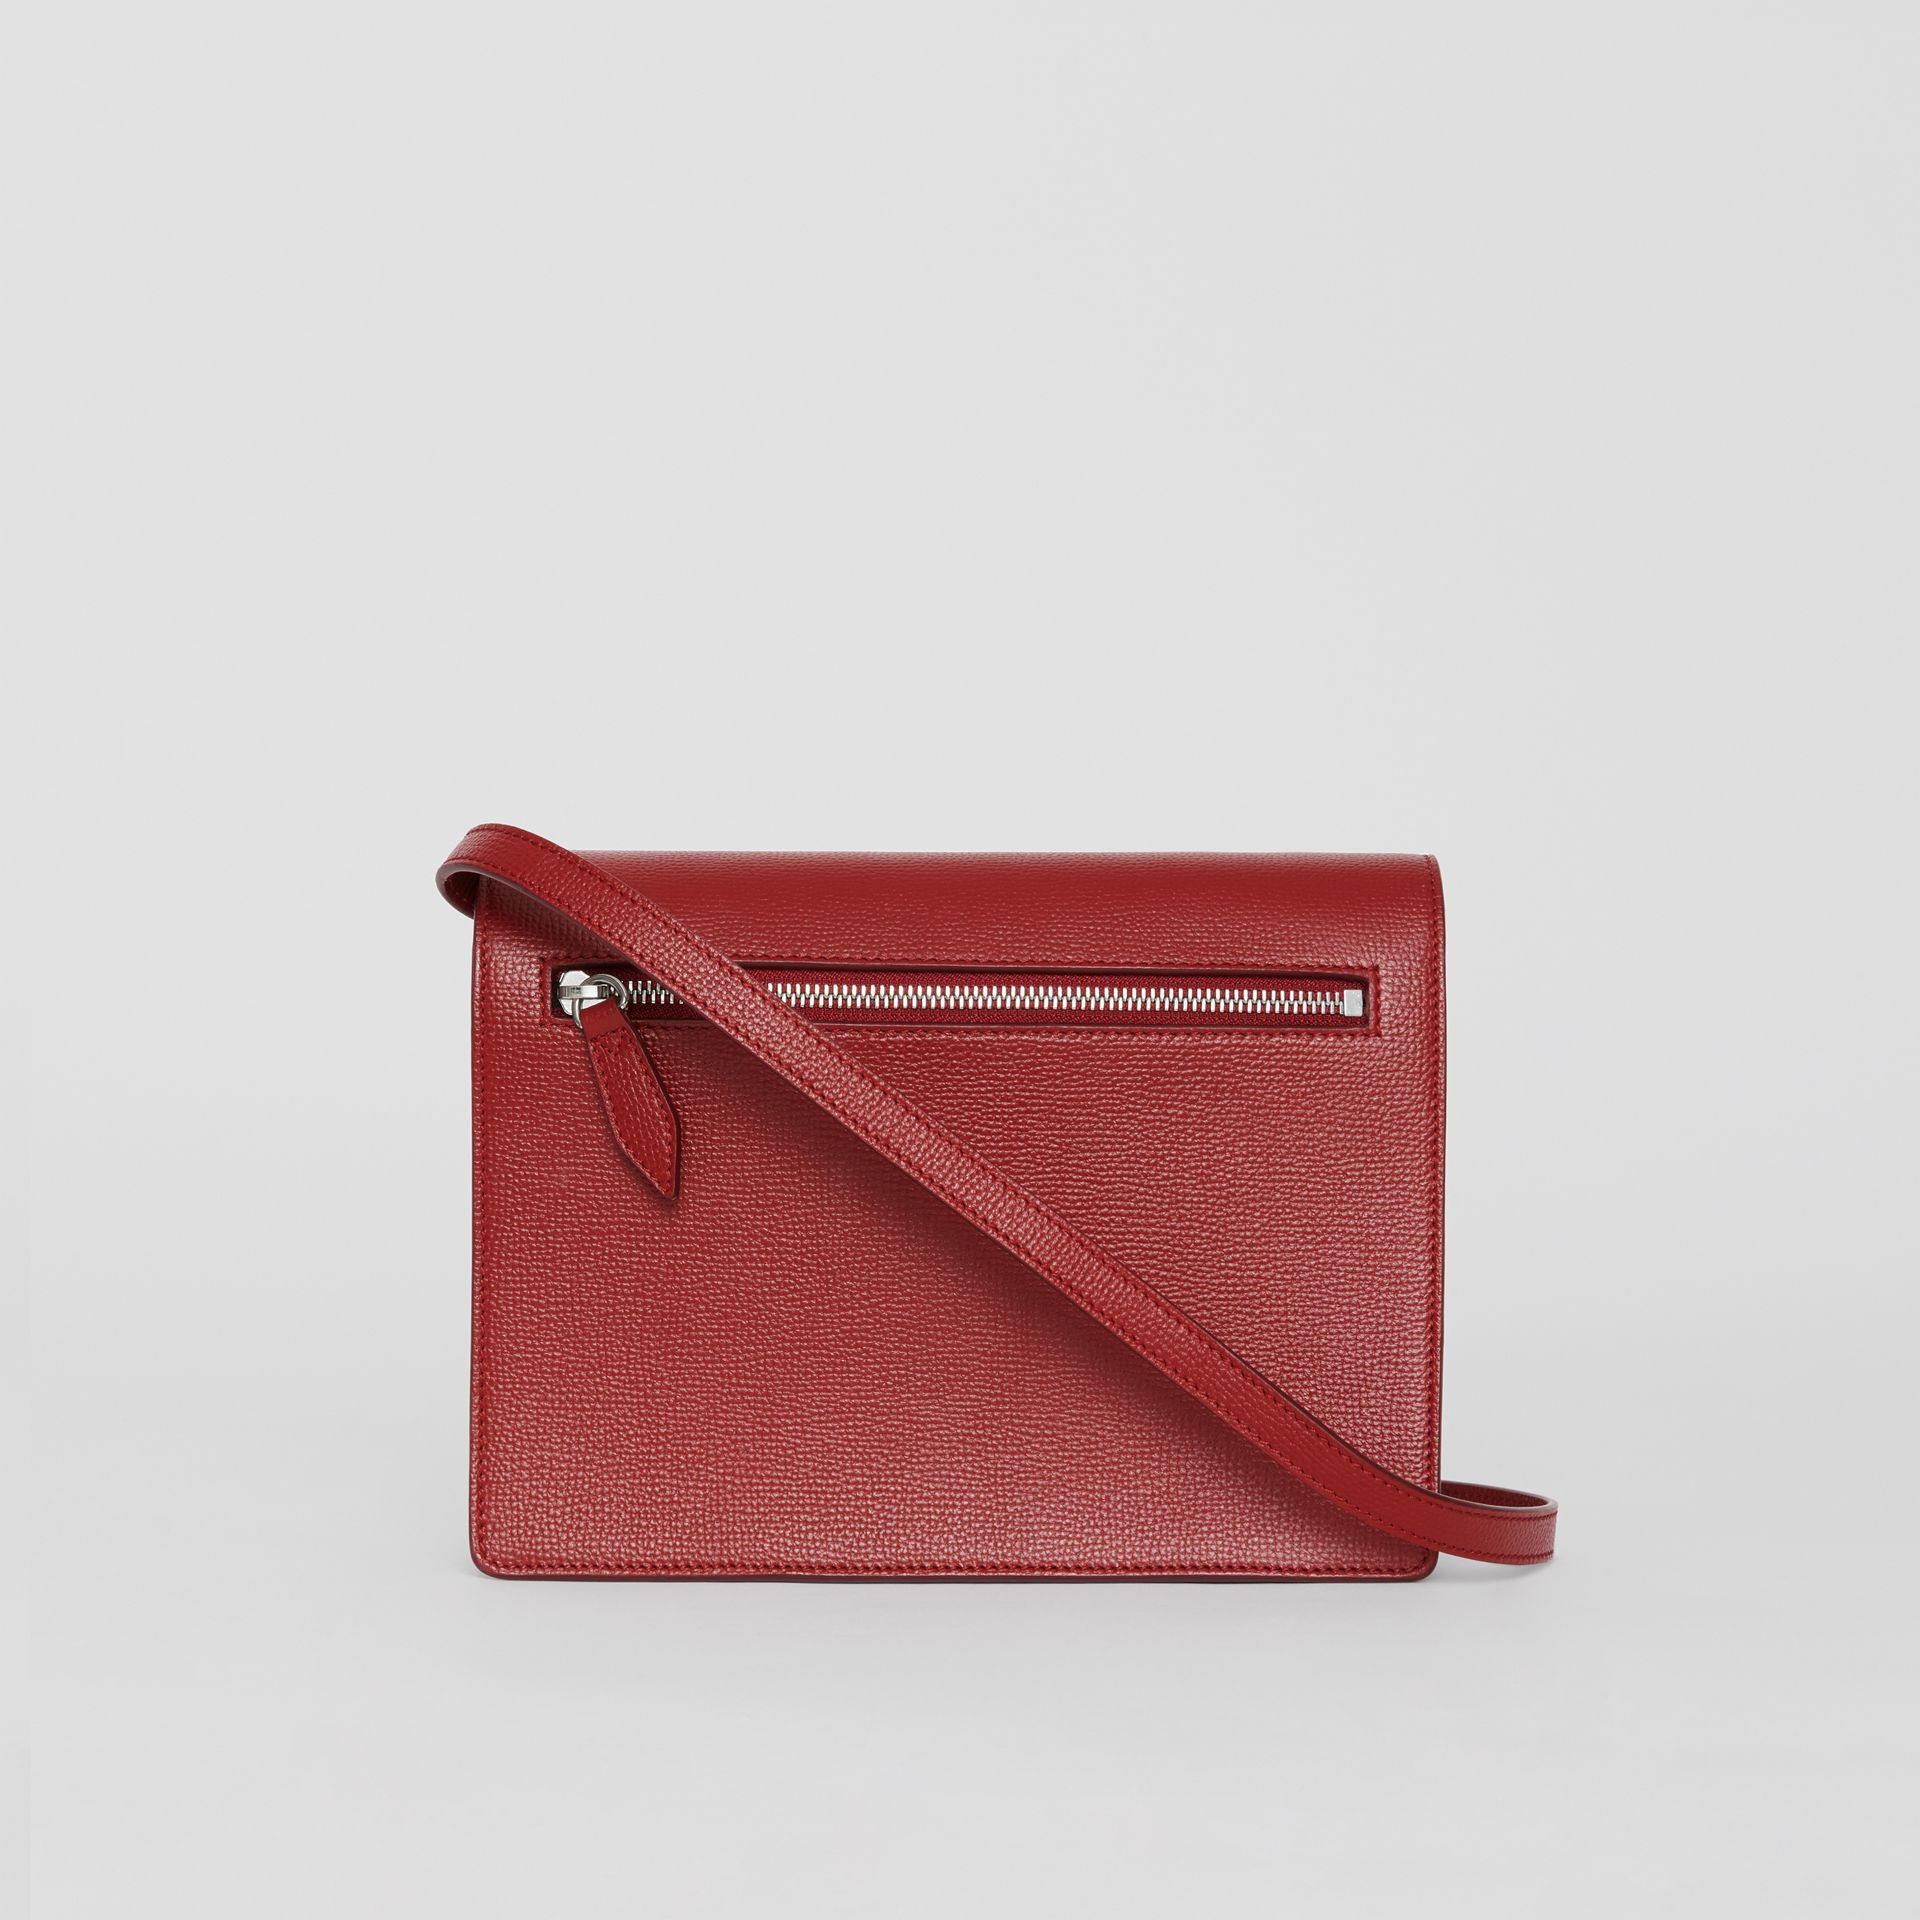 Small Vintage Check and Leather Crossbody Bag in Crimson - Women | Burberry Australia - gallery image 7